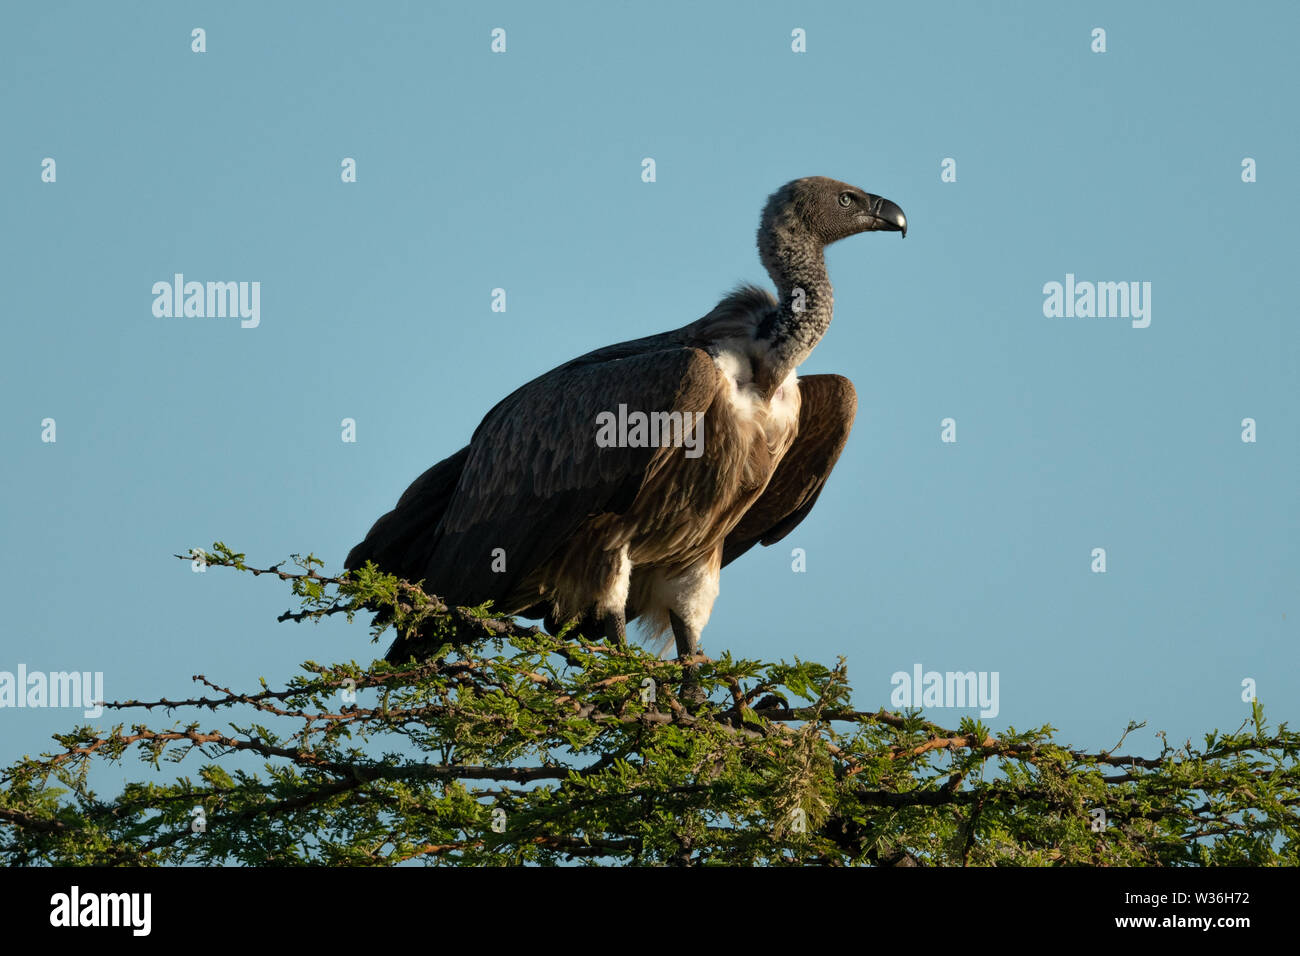 African white-backed vulture perches atop leafy tree - Stock Image